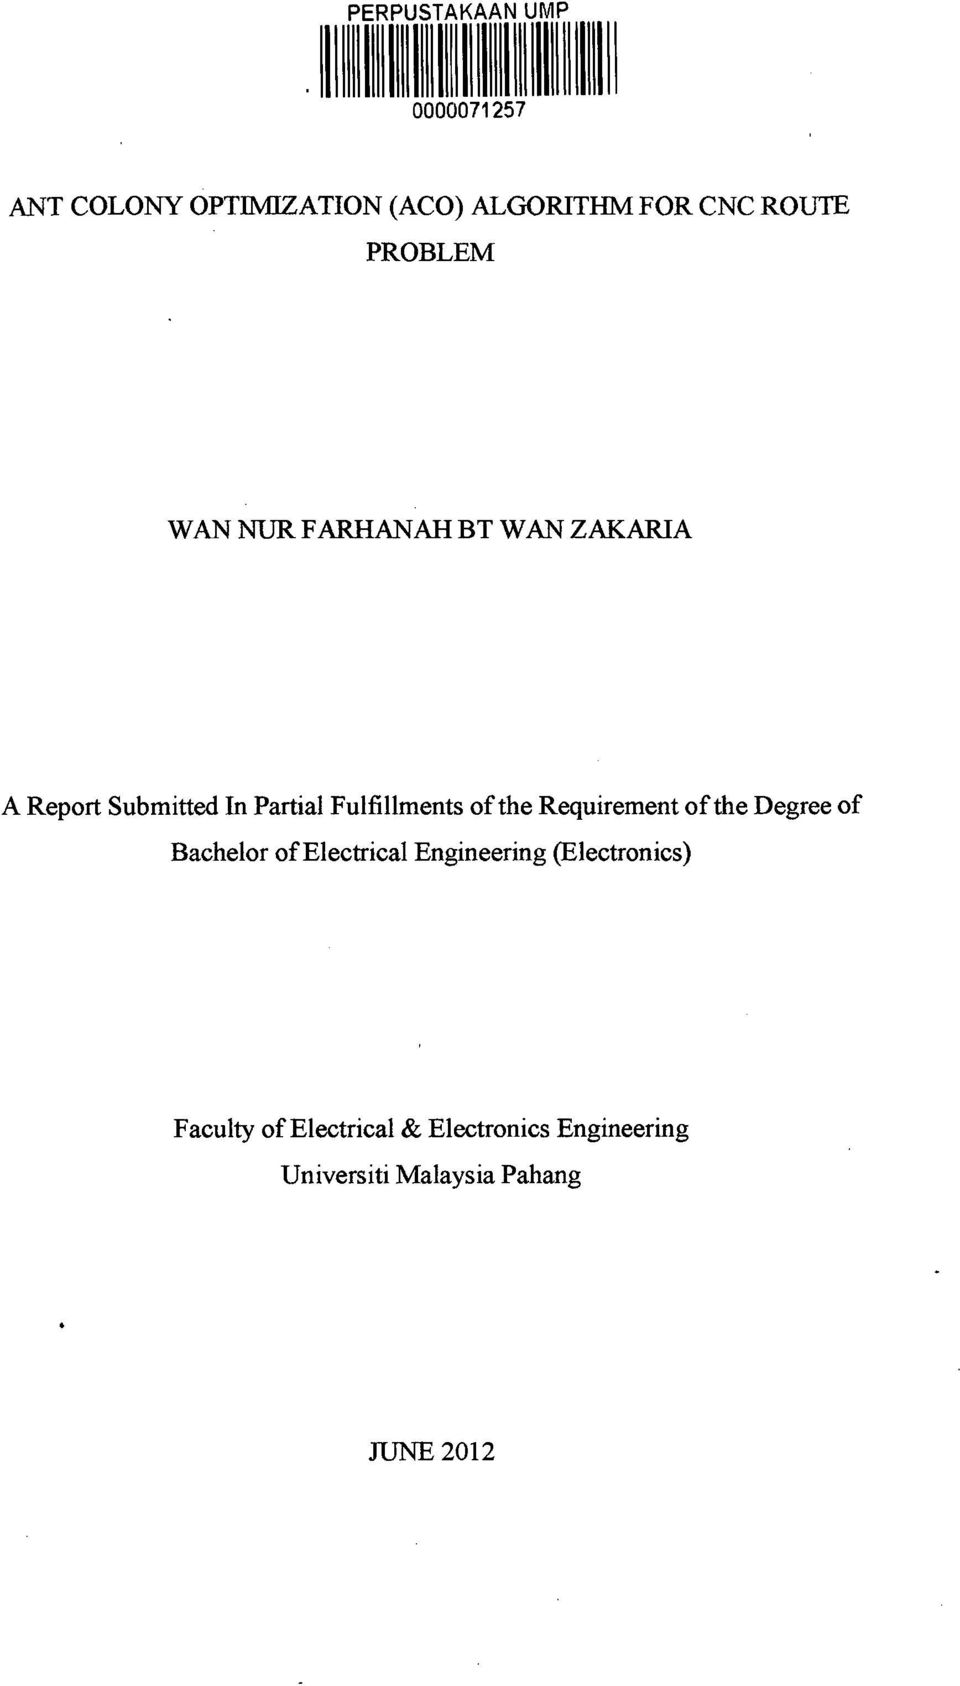 Partial Fulfillments of the Requirement of the Degree of Bachelor of Electrical Engineering